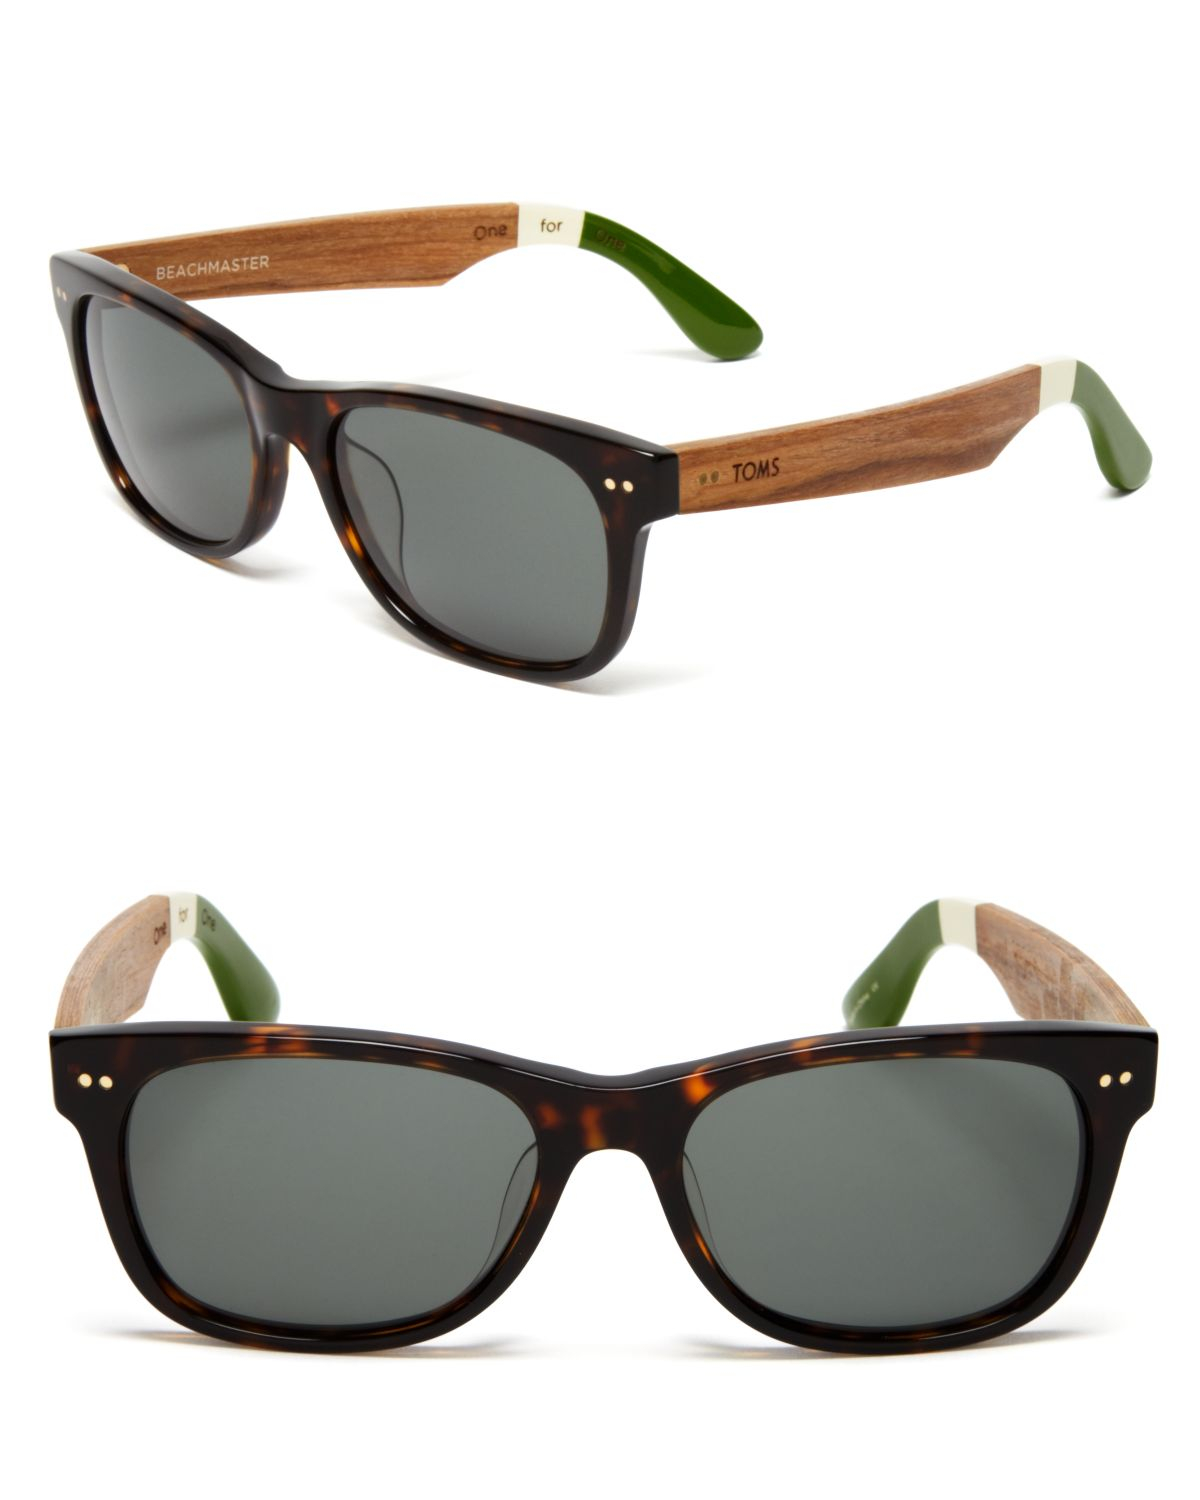 8803b50701fd Lyst - TOMS Beachmaster Sunglasses in Brown